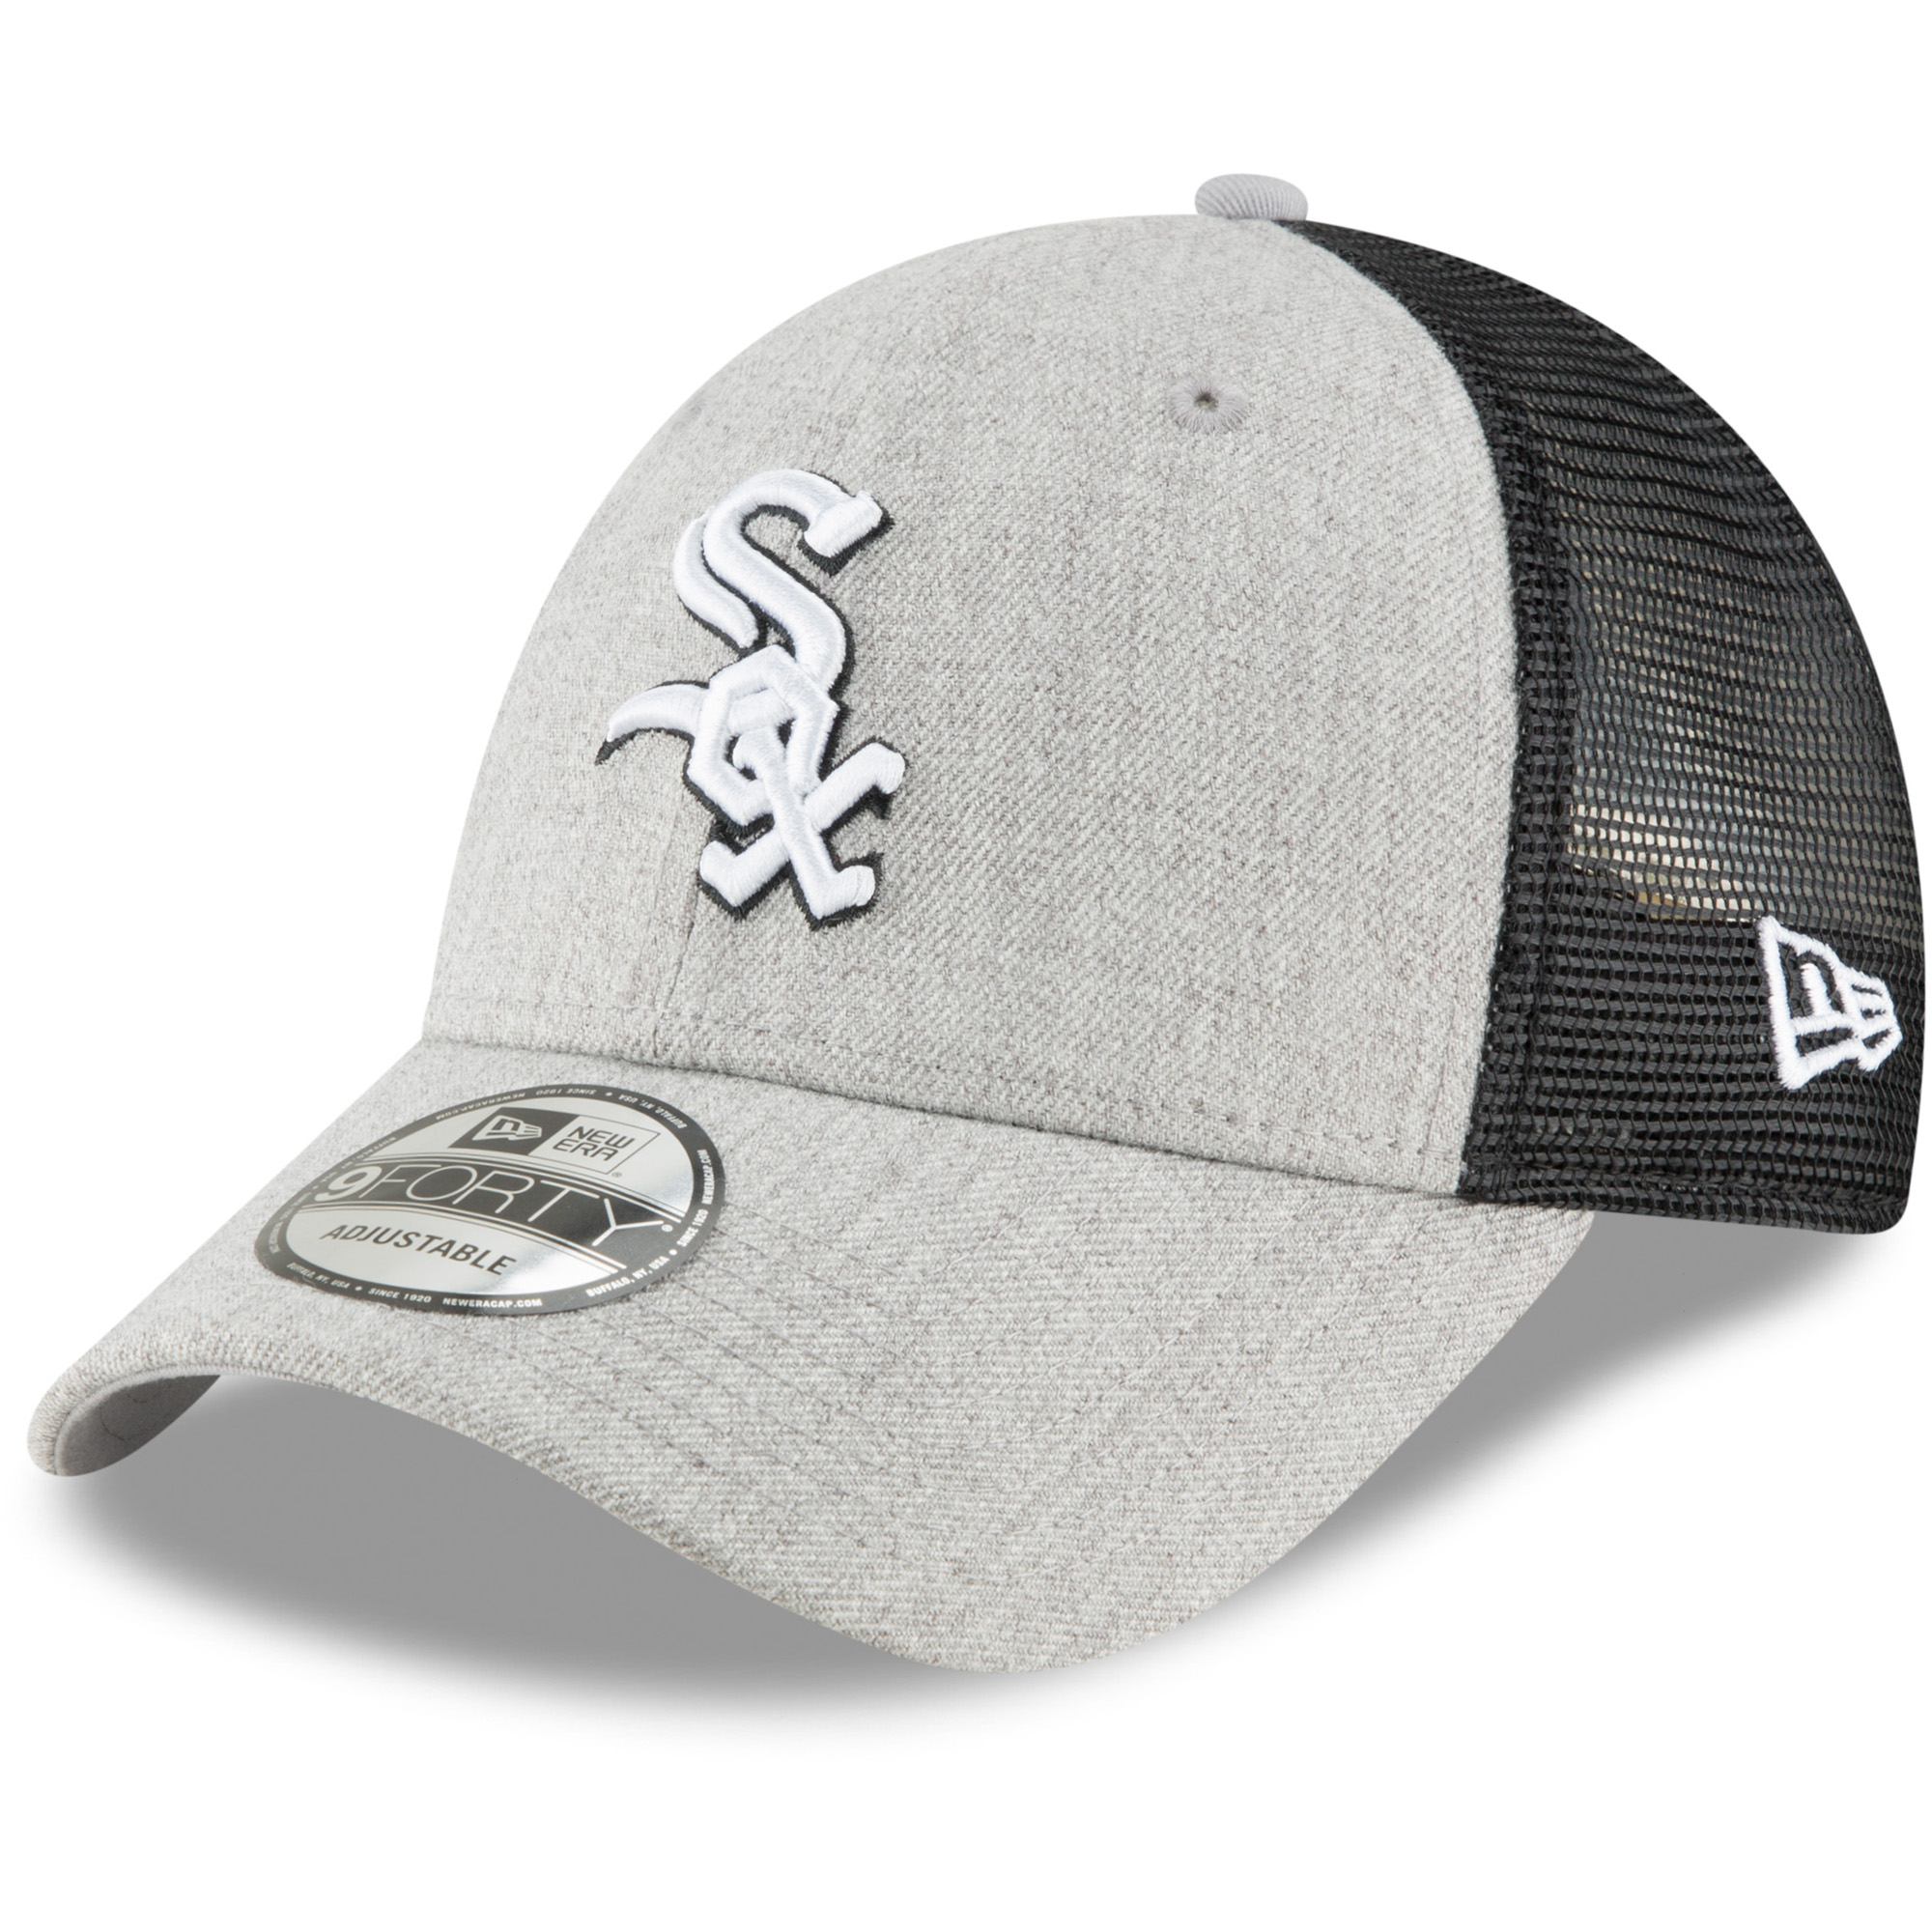 super popular 3615a a7429 ... new zealand chicago white sox new era turn trucker 9forty adjustable  snapback hat heathered gray black